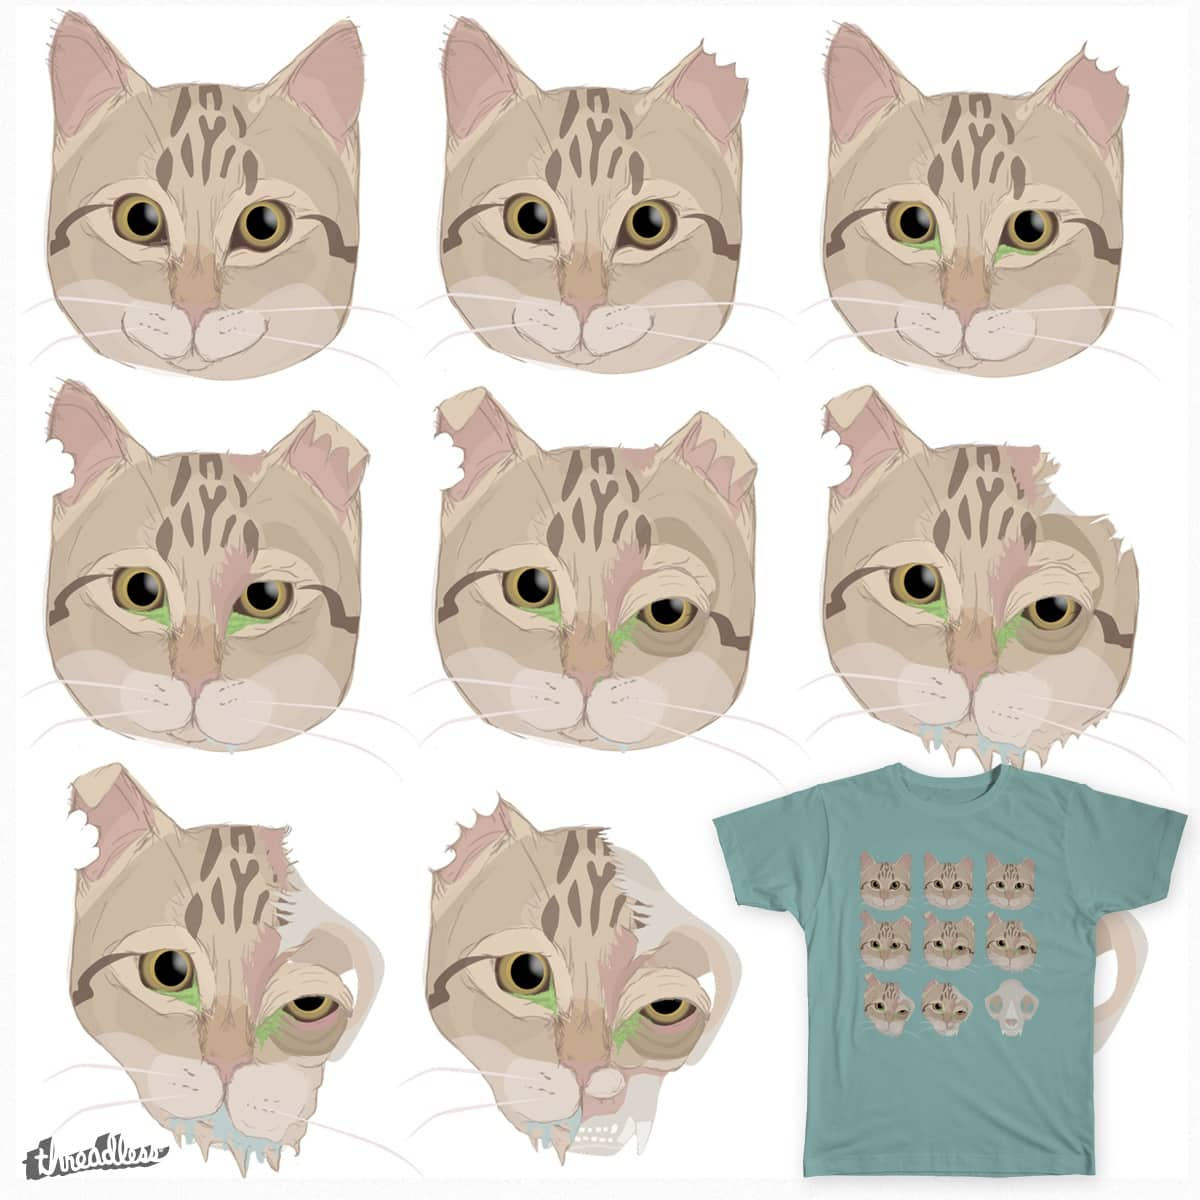 9 Lives by tara.cosgraveperry on Threadless